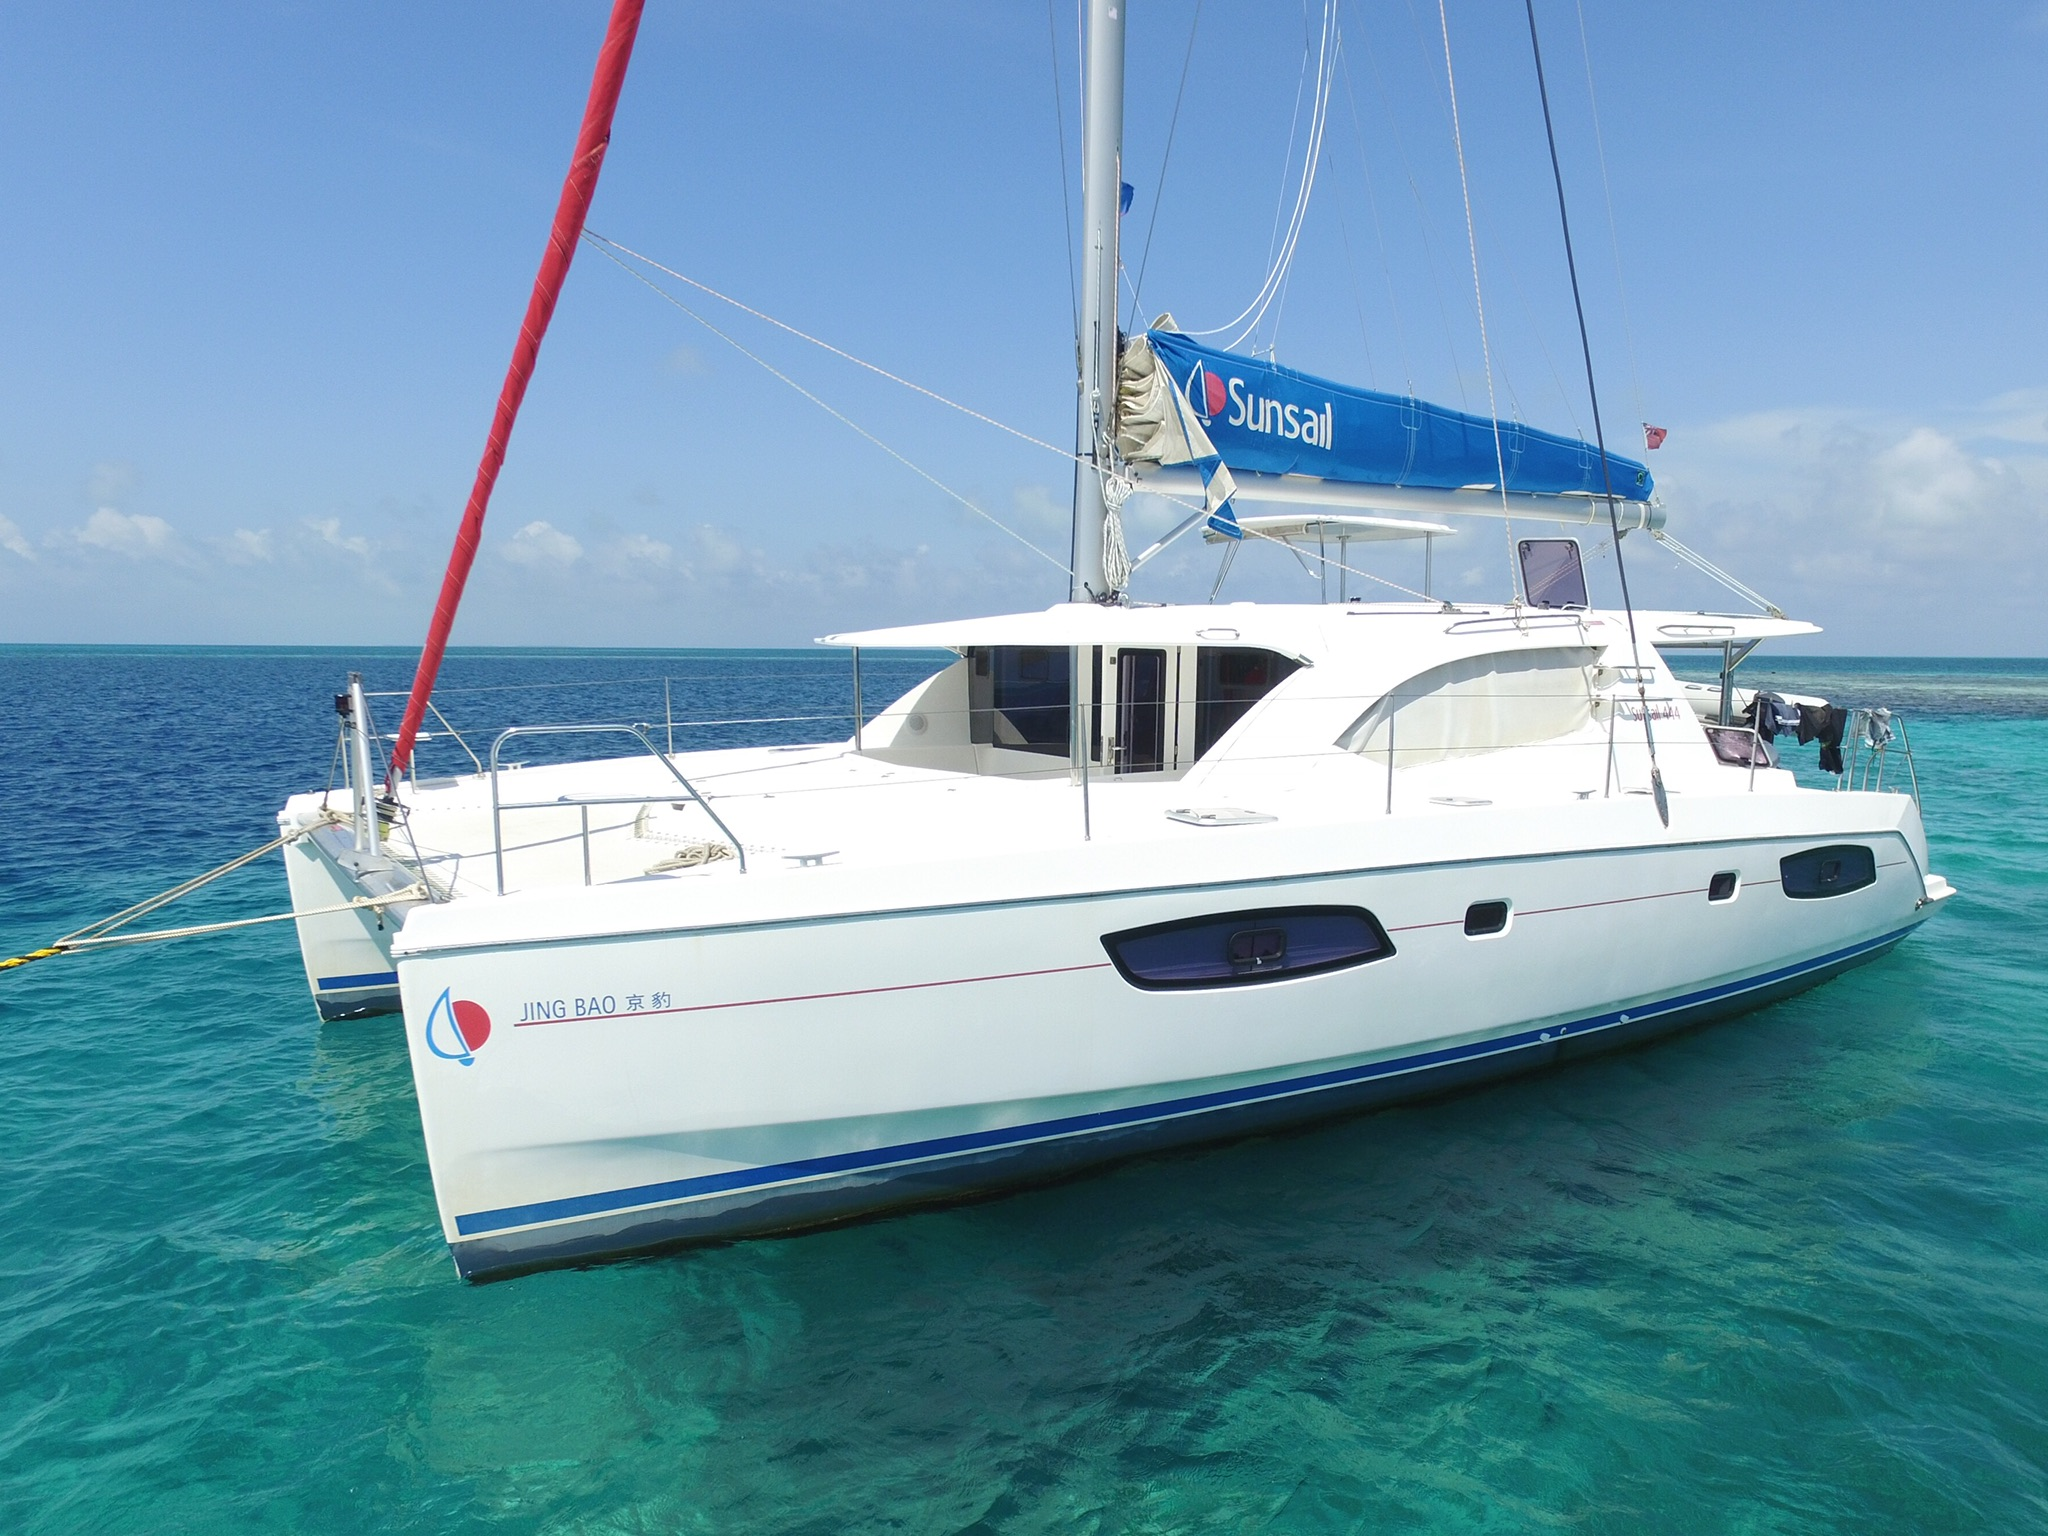 Latest Listings and Price Cuts on Catamarans.com